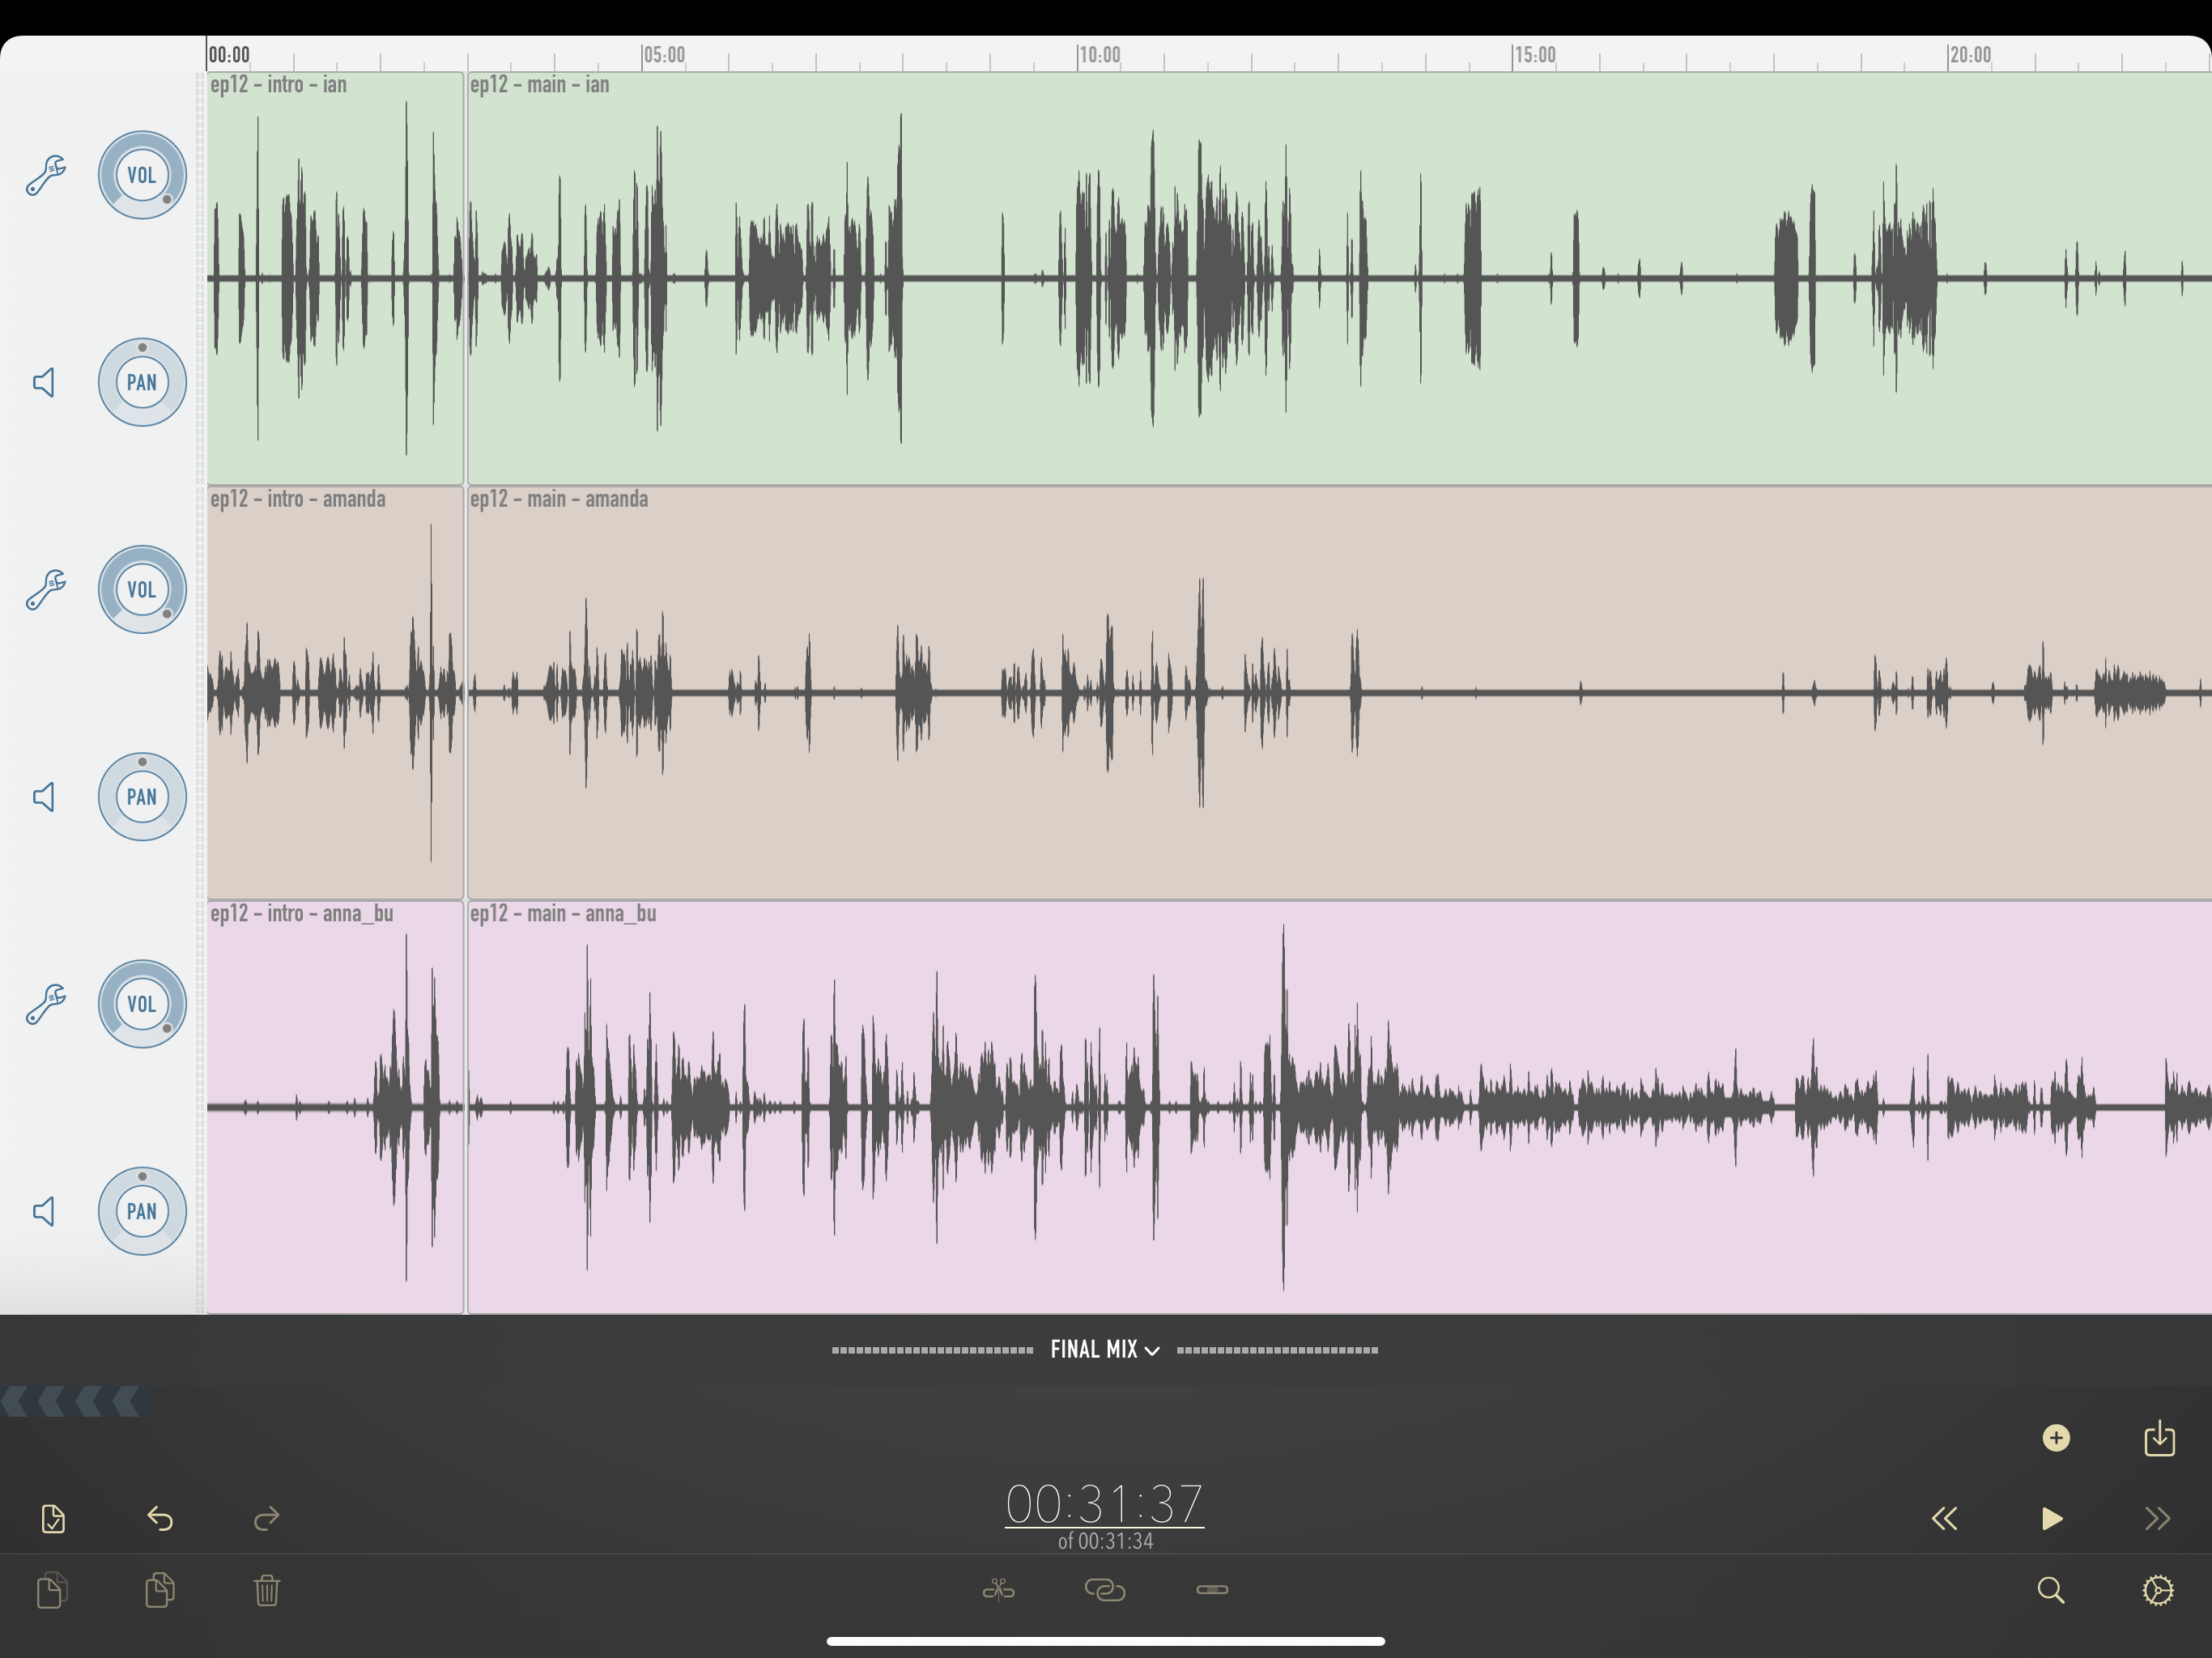 Ferrite Recording Studio screenshot, containing initial imported audio clips